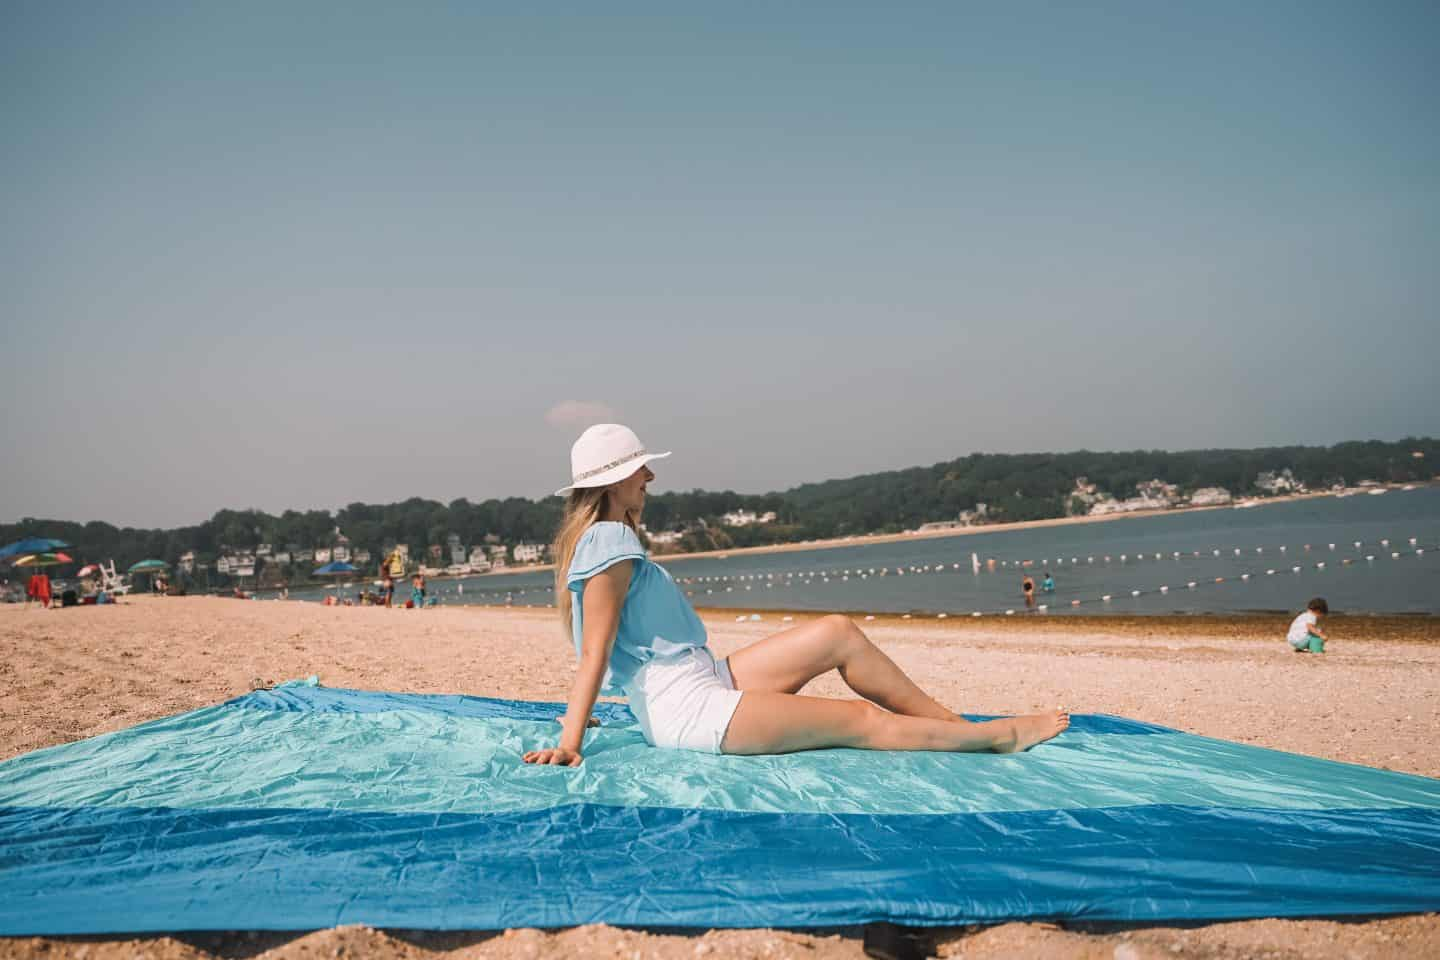 beach packing list: Sand free blanket. Girl relaxing on it while at the beach